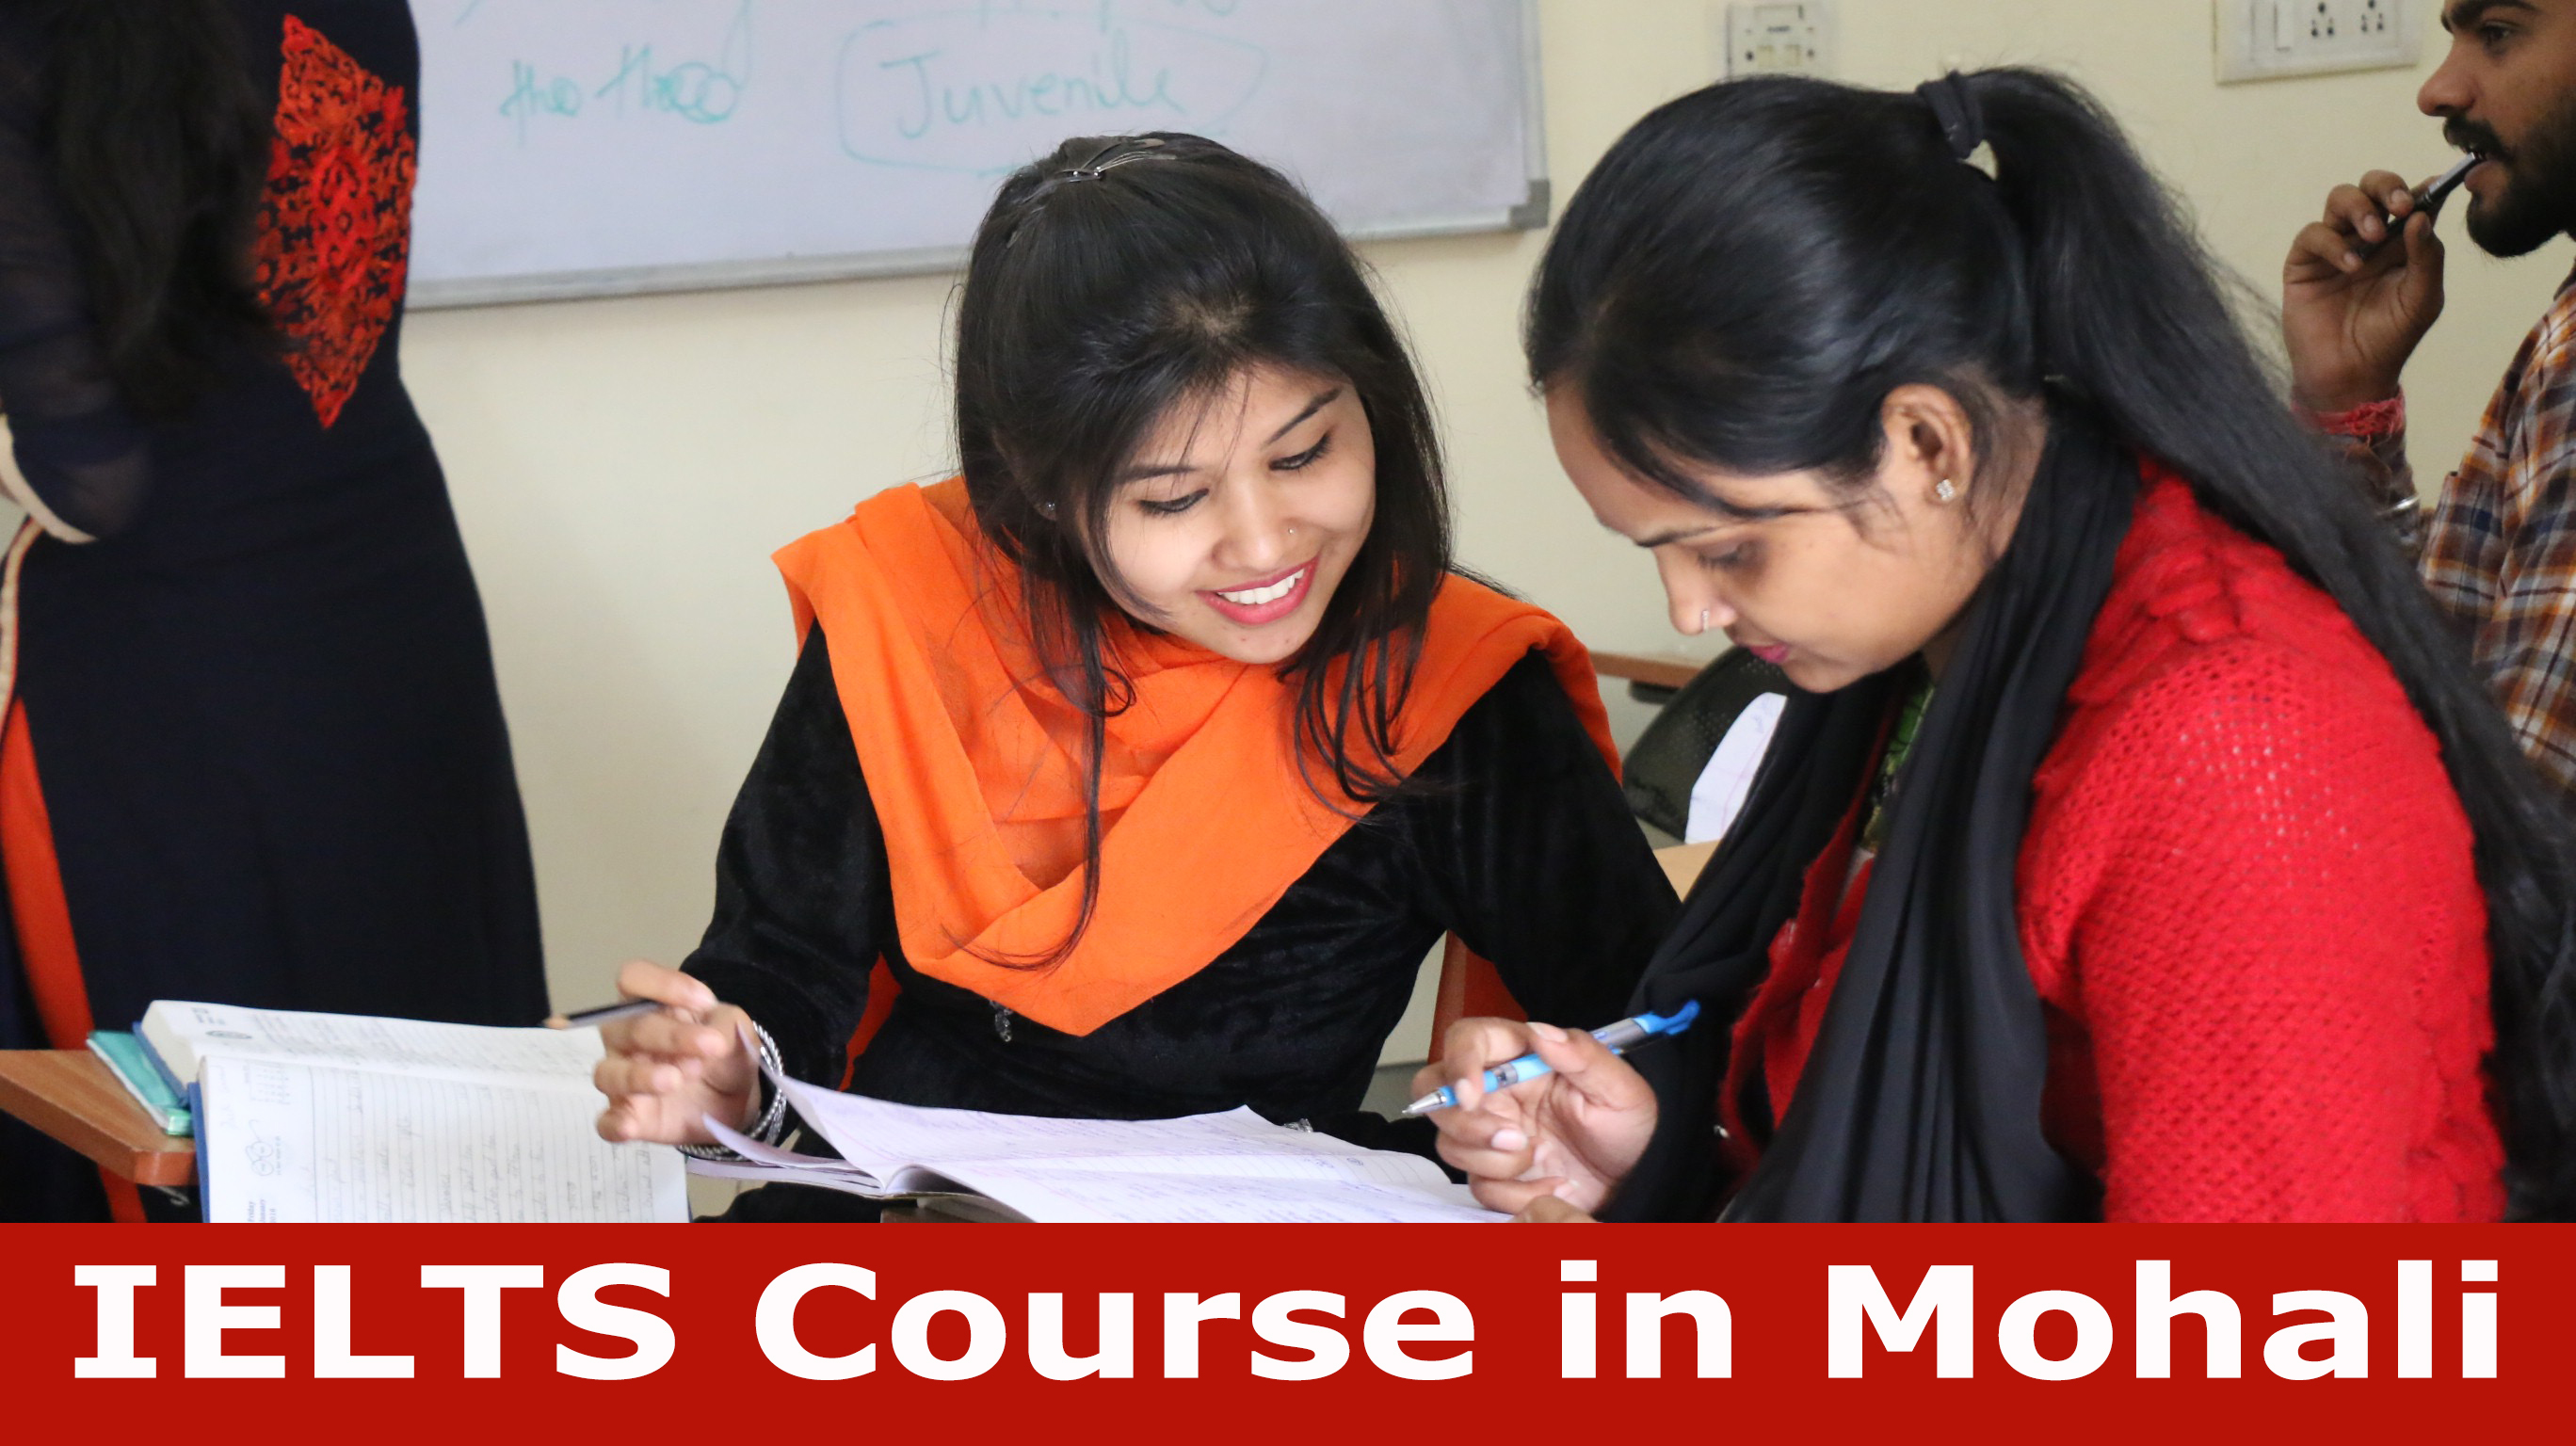 IELTS Course in Mohali